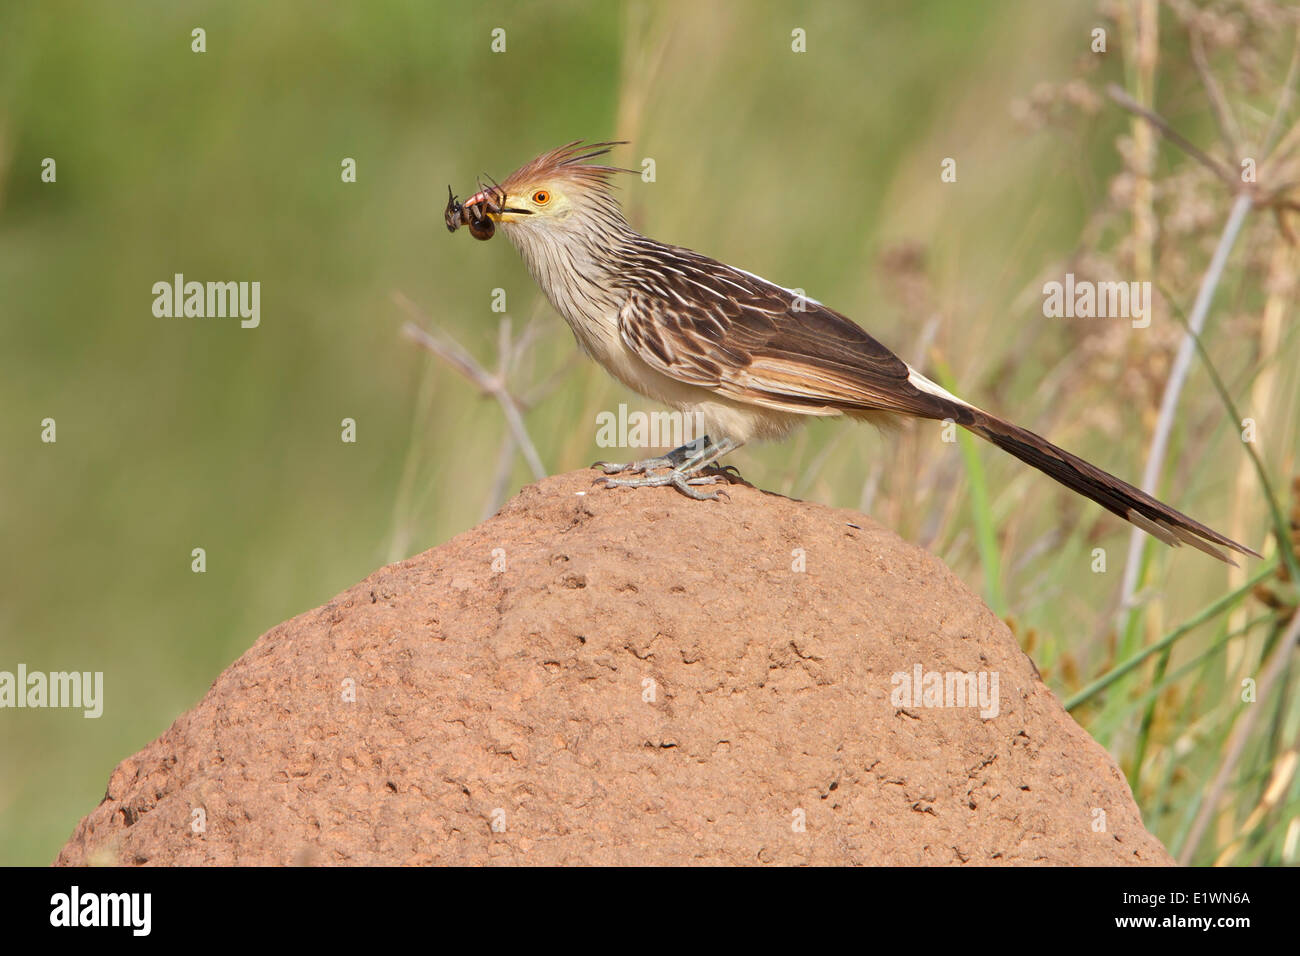 Guira Cuckoo (Guira guira) perched on the ground in Bolivia, South America. - Stock Image